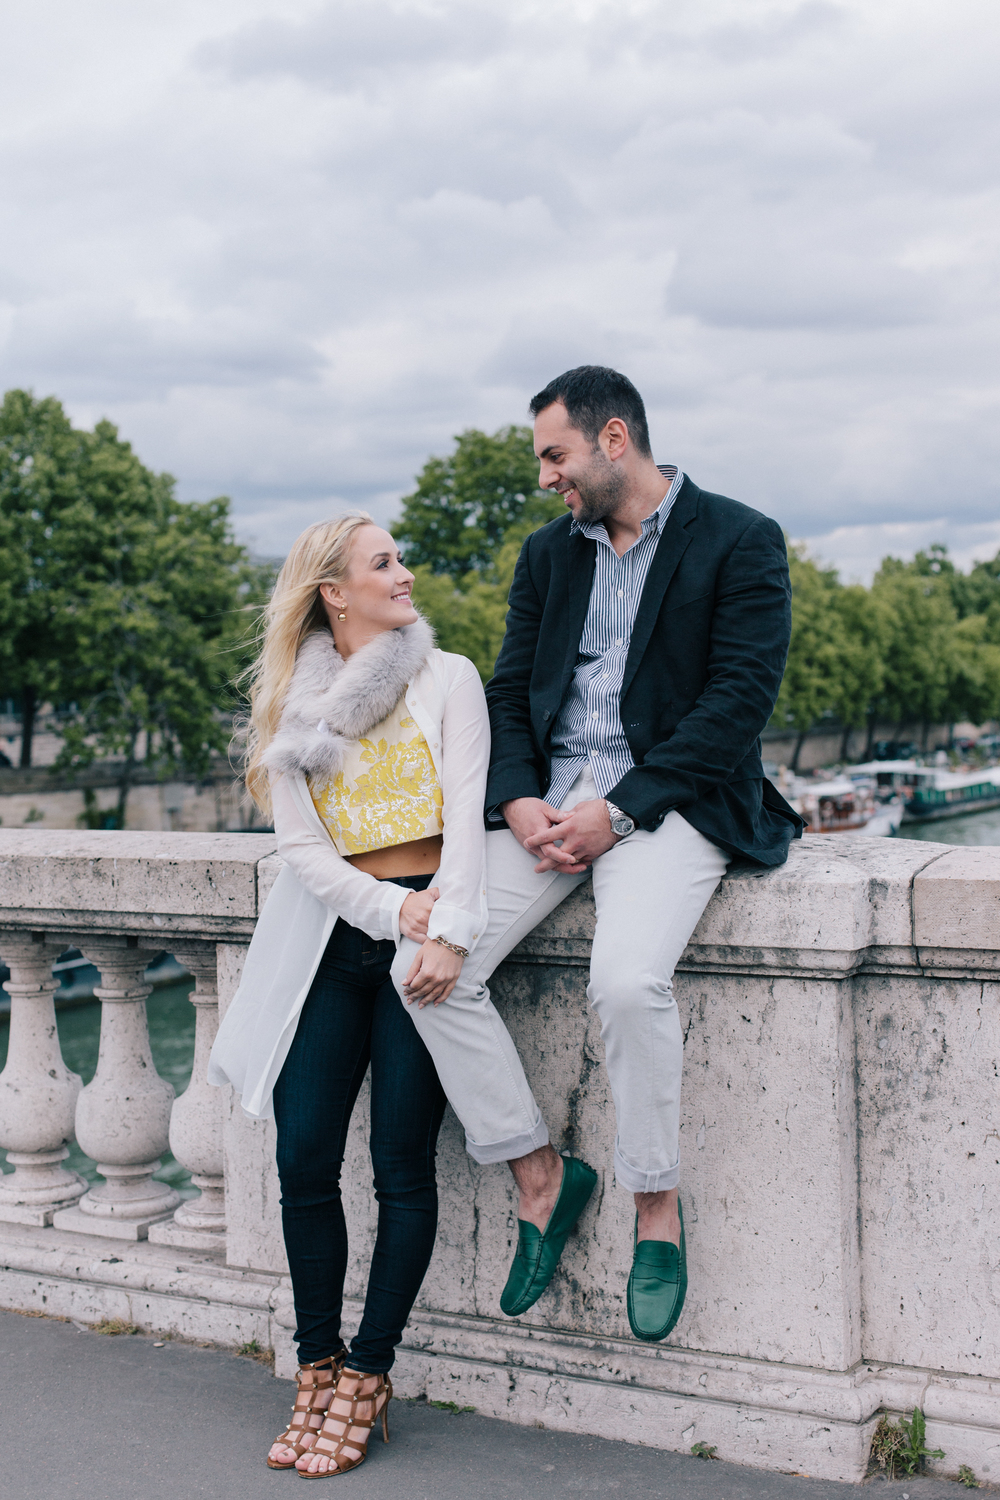 flytographer-couples-love-paris-france